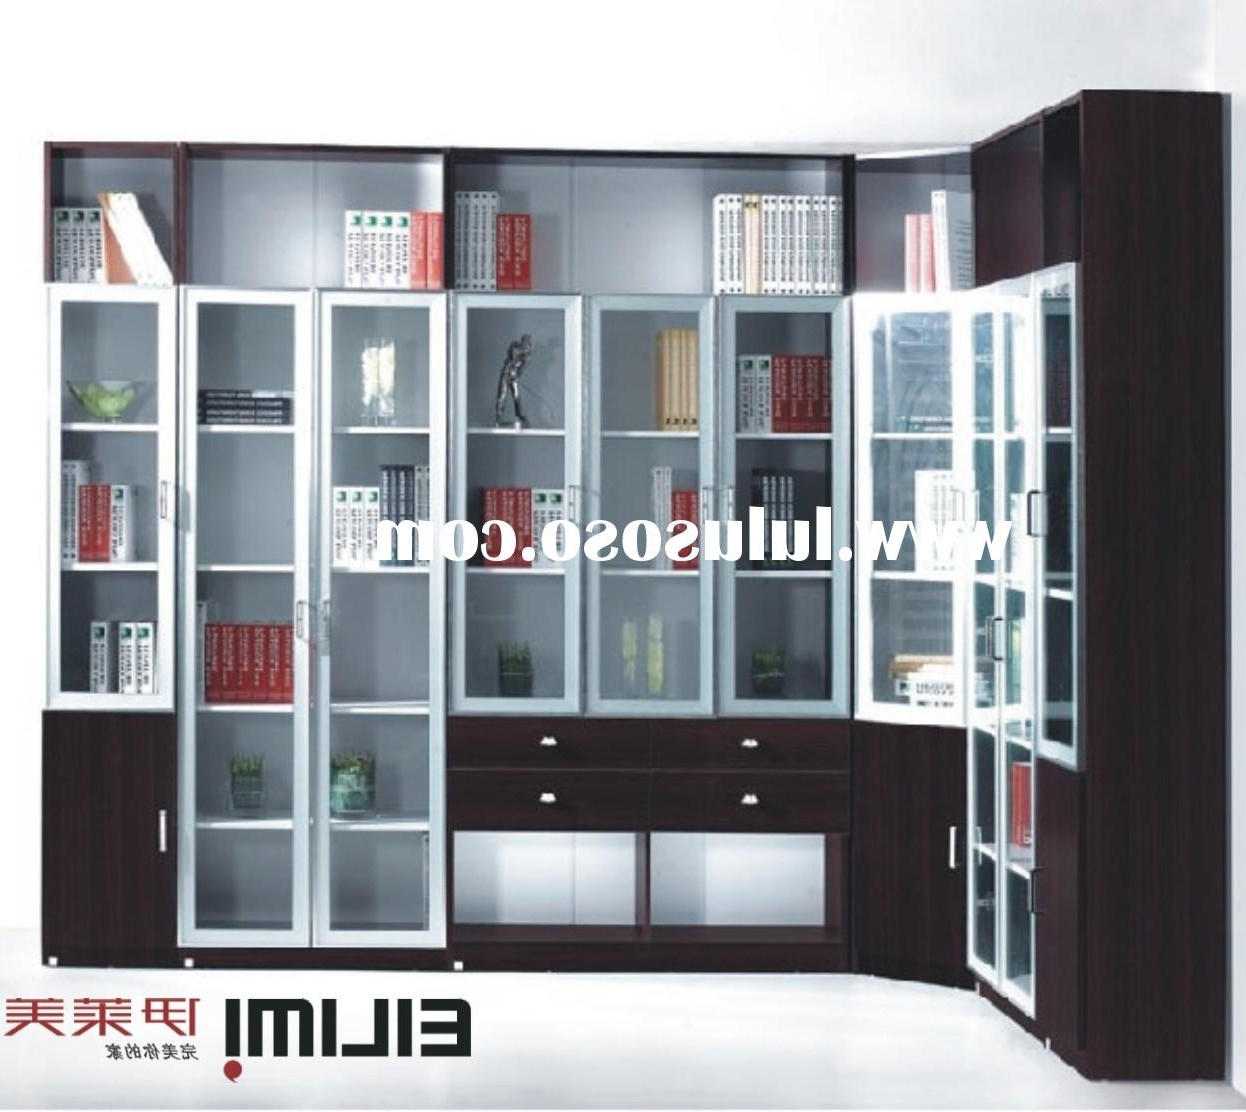 Most Recently Released Book Cabinet Design Pertaining To Book Cabinet Design Gostarry (View 2 of 15)